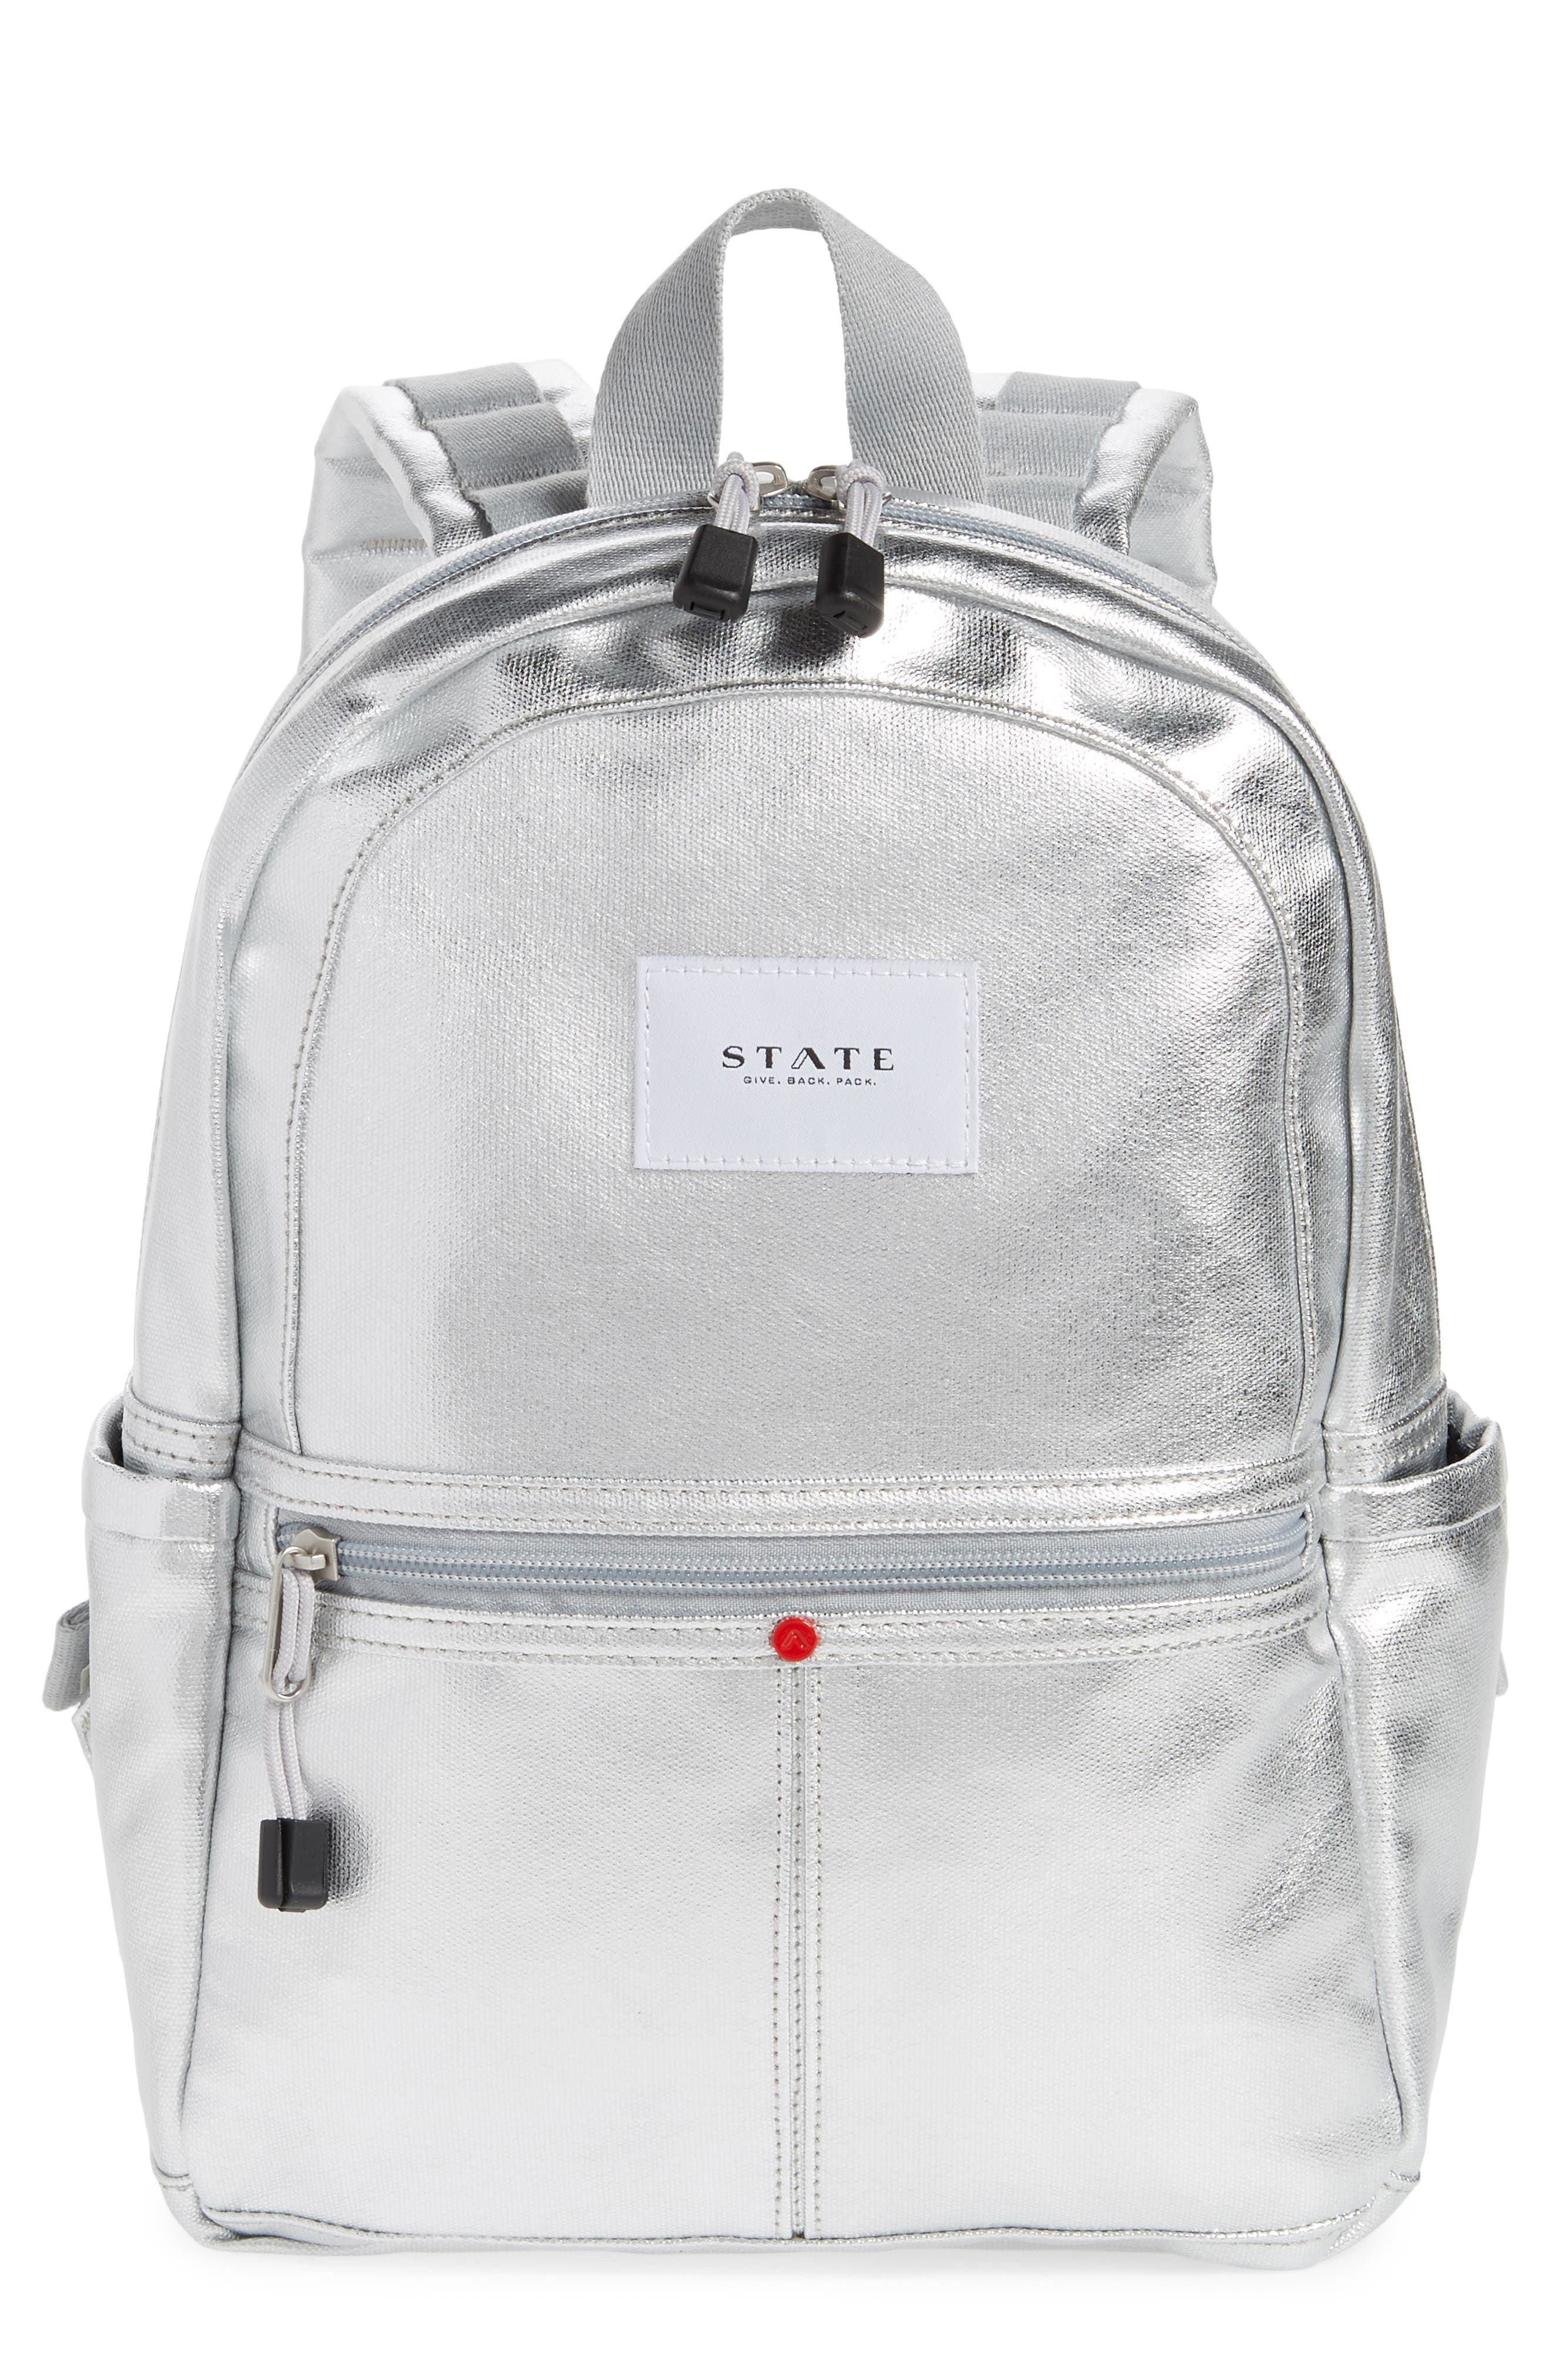 Downtown Mini Kane Canvas Backpack,                         Main,                         color, Silver